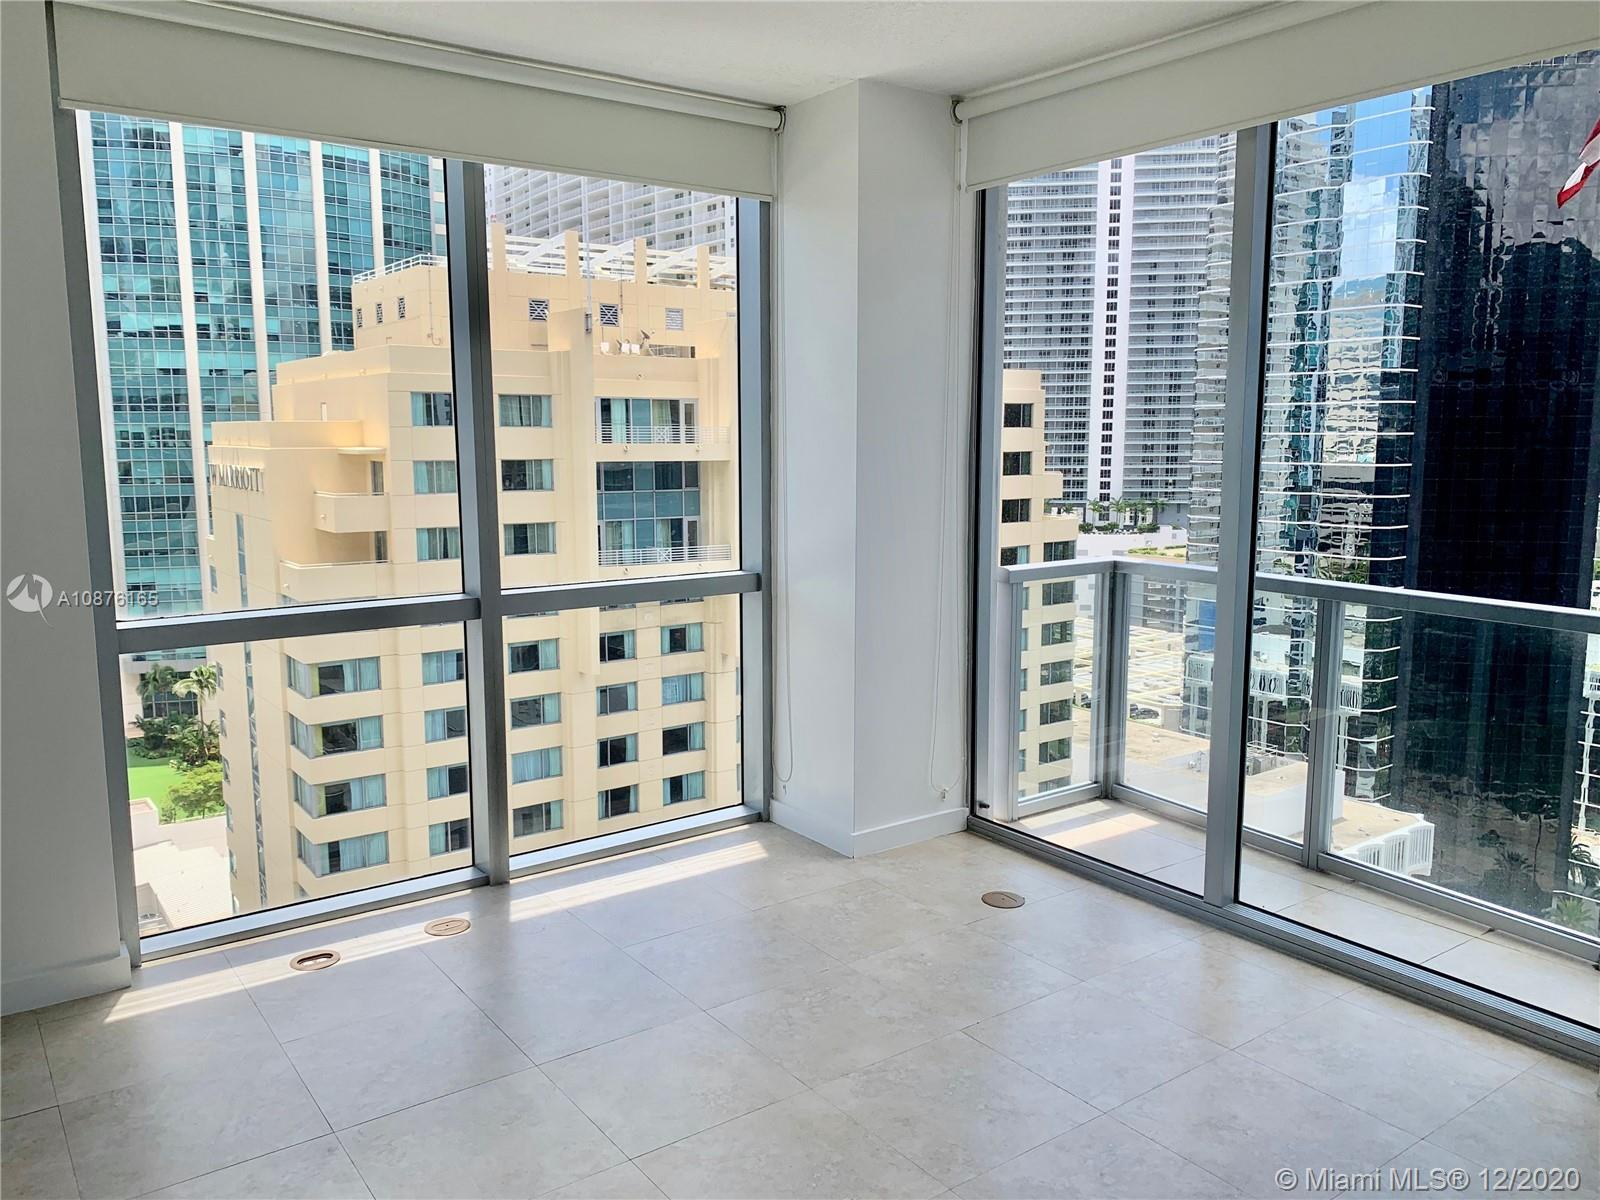 Spectacular corner unit in best located building on Brickell Avenue. 2 BEDS/ 2 BATHS, facing South East. Very nice view. Unit features floor to ceiling windows on master bedroom; stainless steal appliances; Modern Italian kitchen; Granite countertops; walk king distance to Mary Brickell Village, restaurants, bars, 10 minutes away from the airport and much more!.